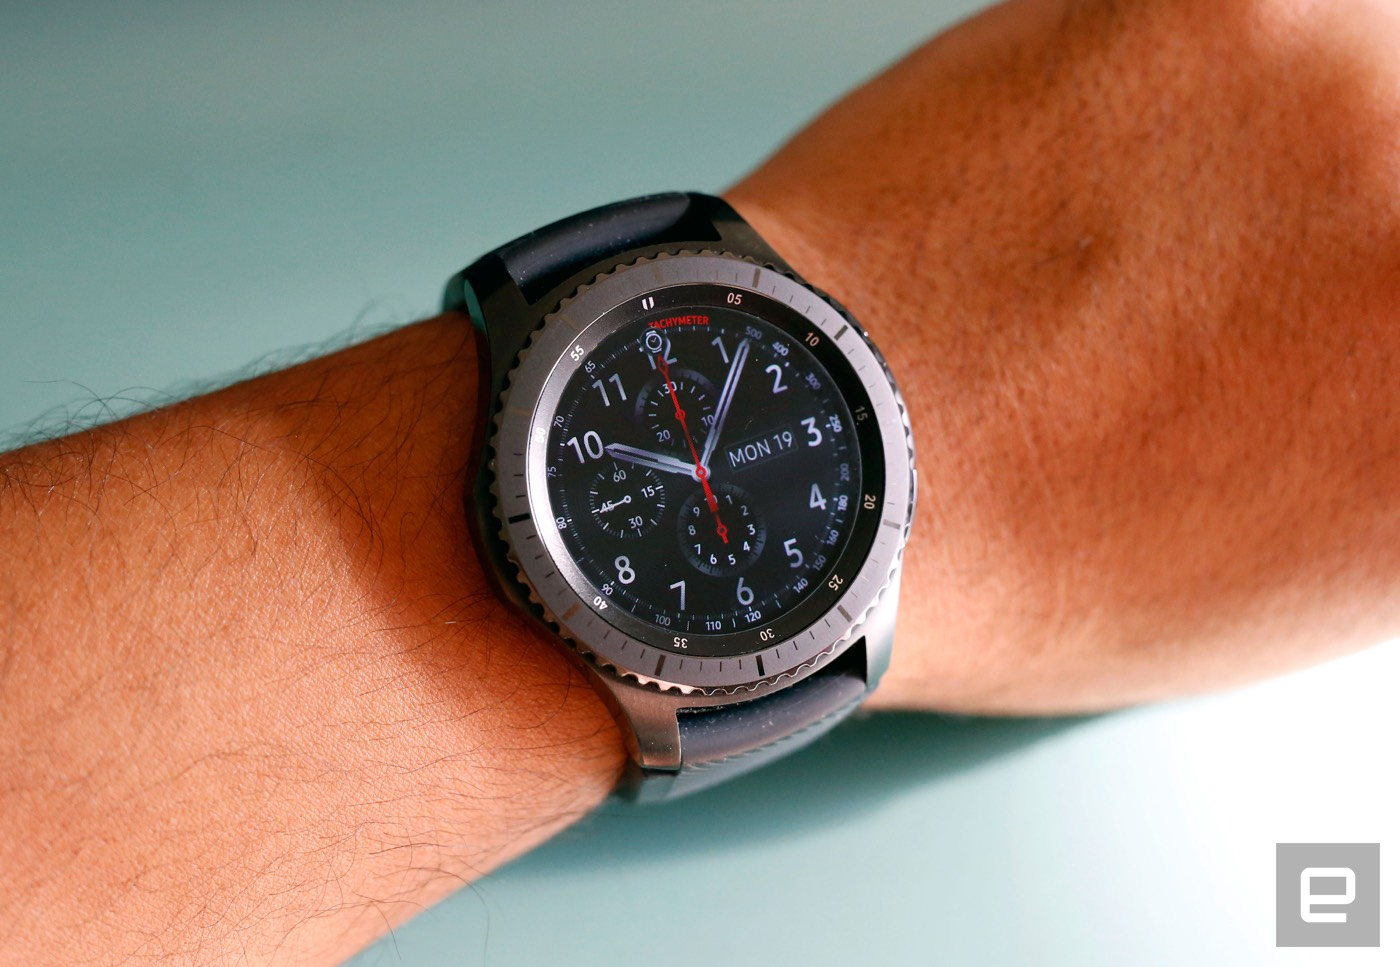 Wrap-up. With the Gear S3 Frontier, Samsung ...